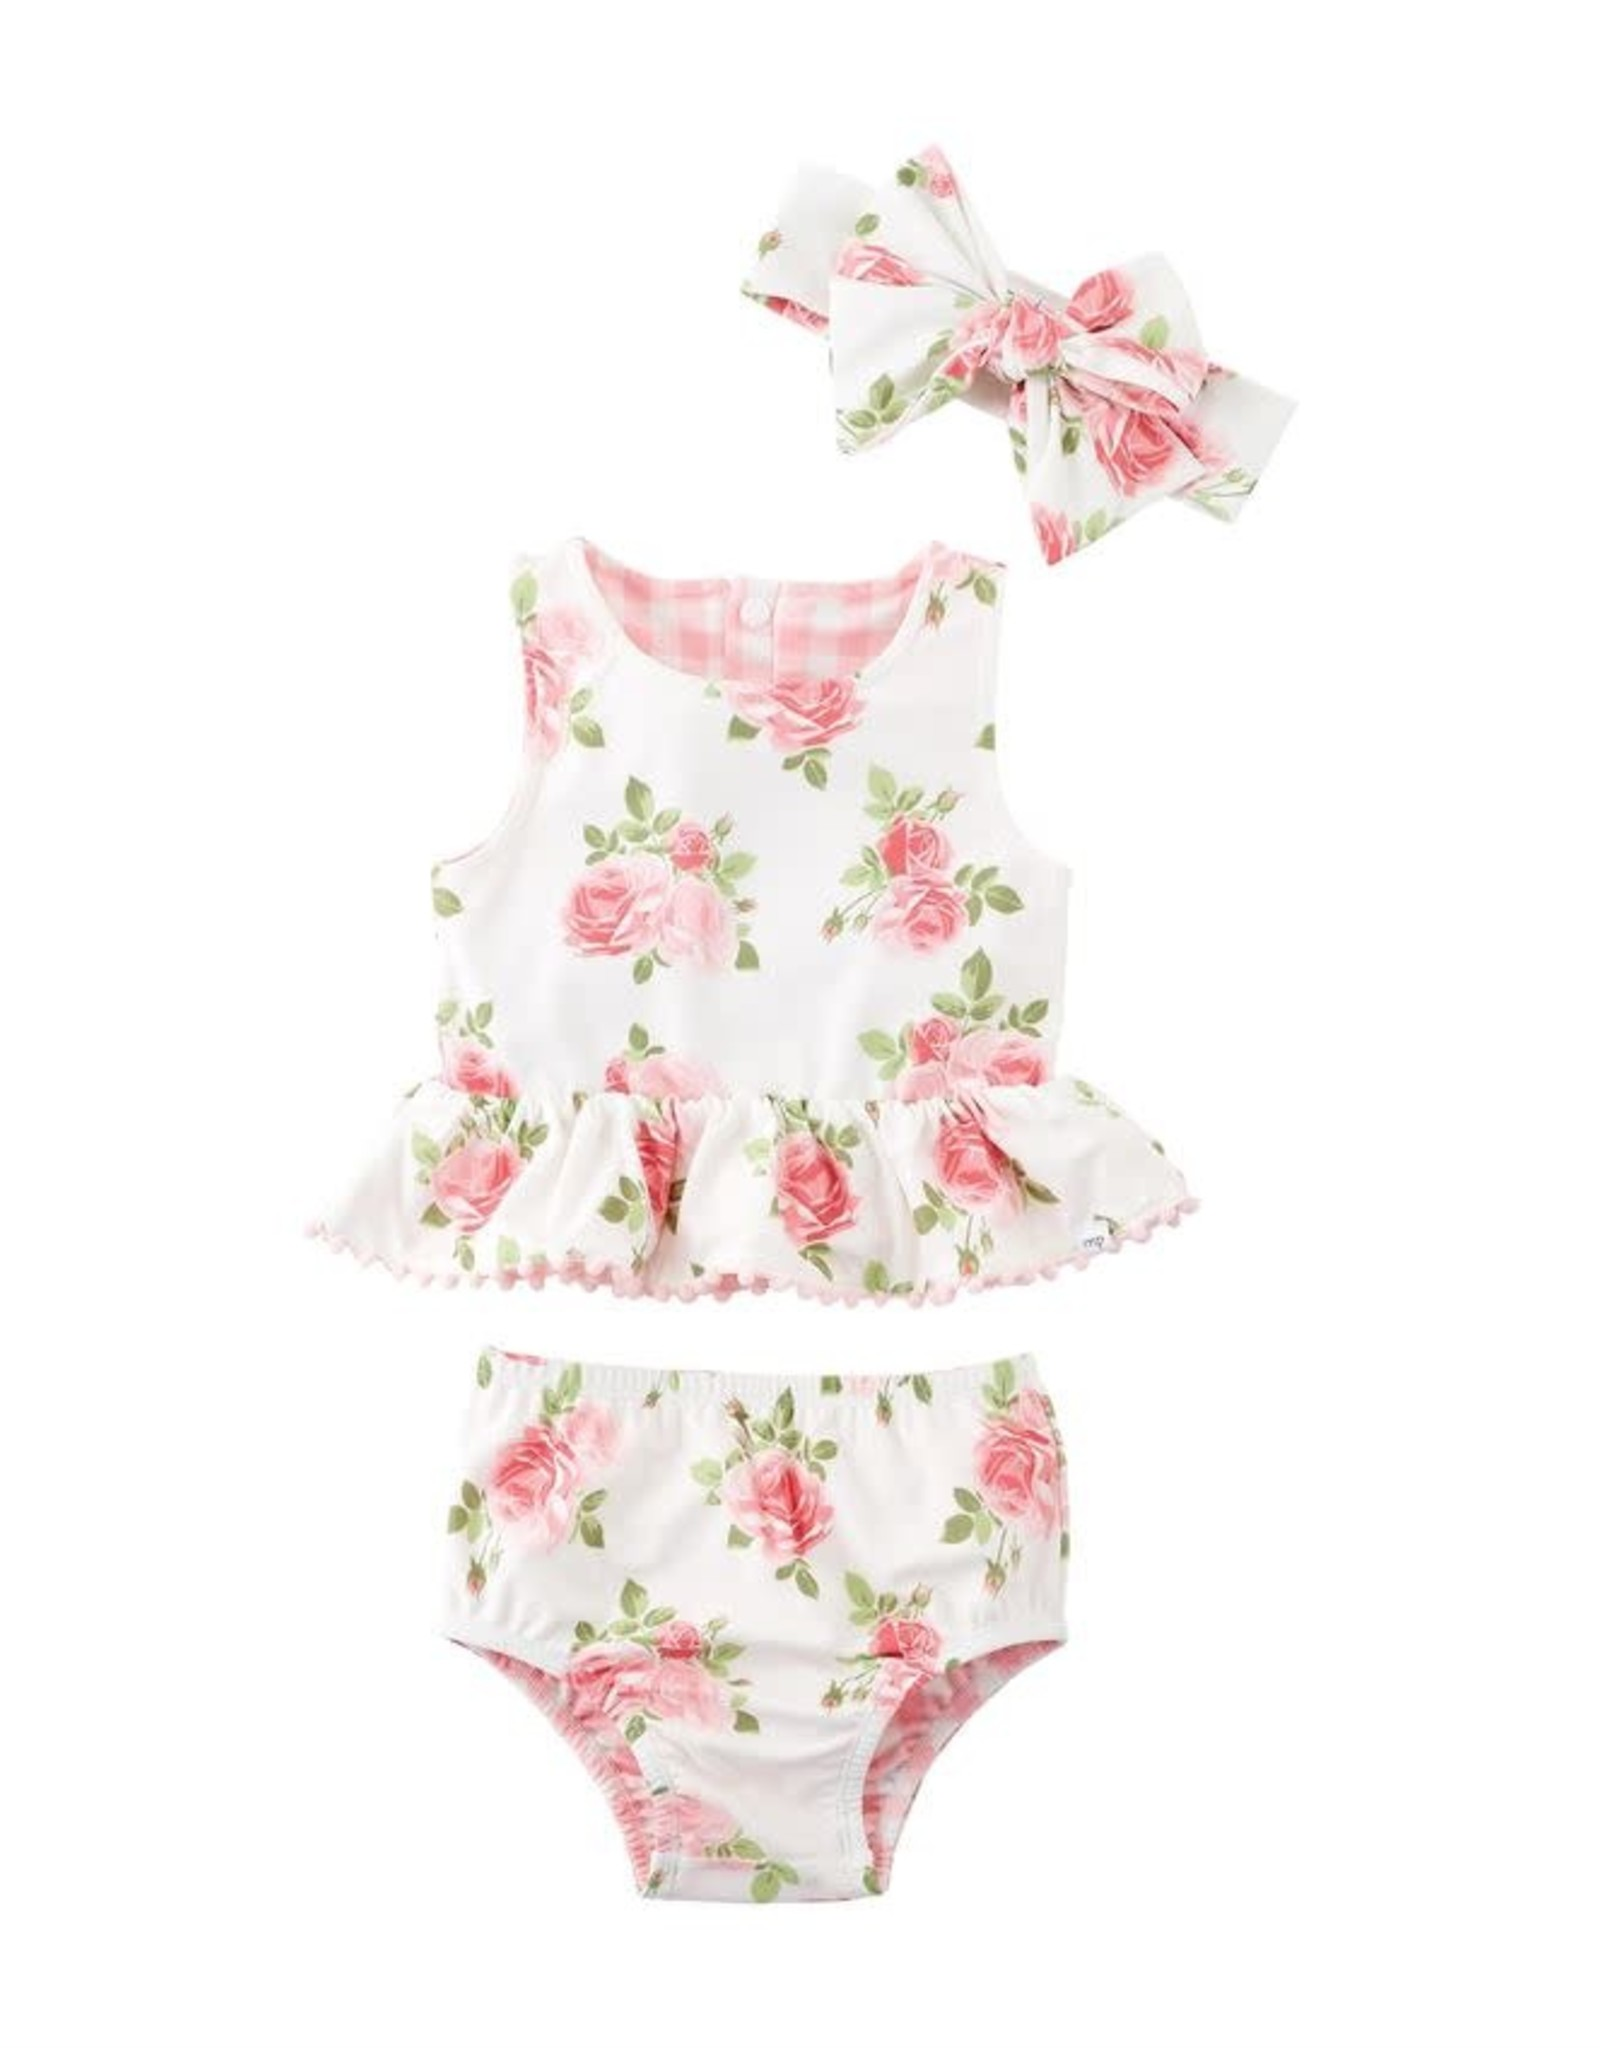 Rose Reversible Swimsuit